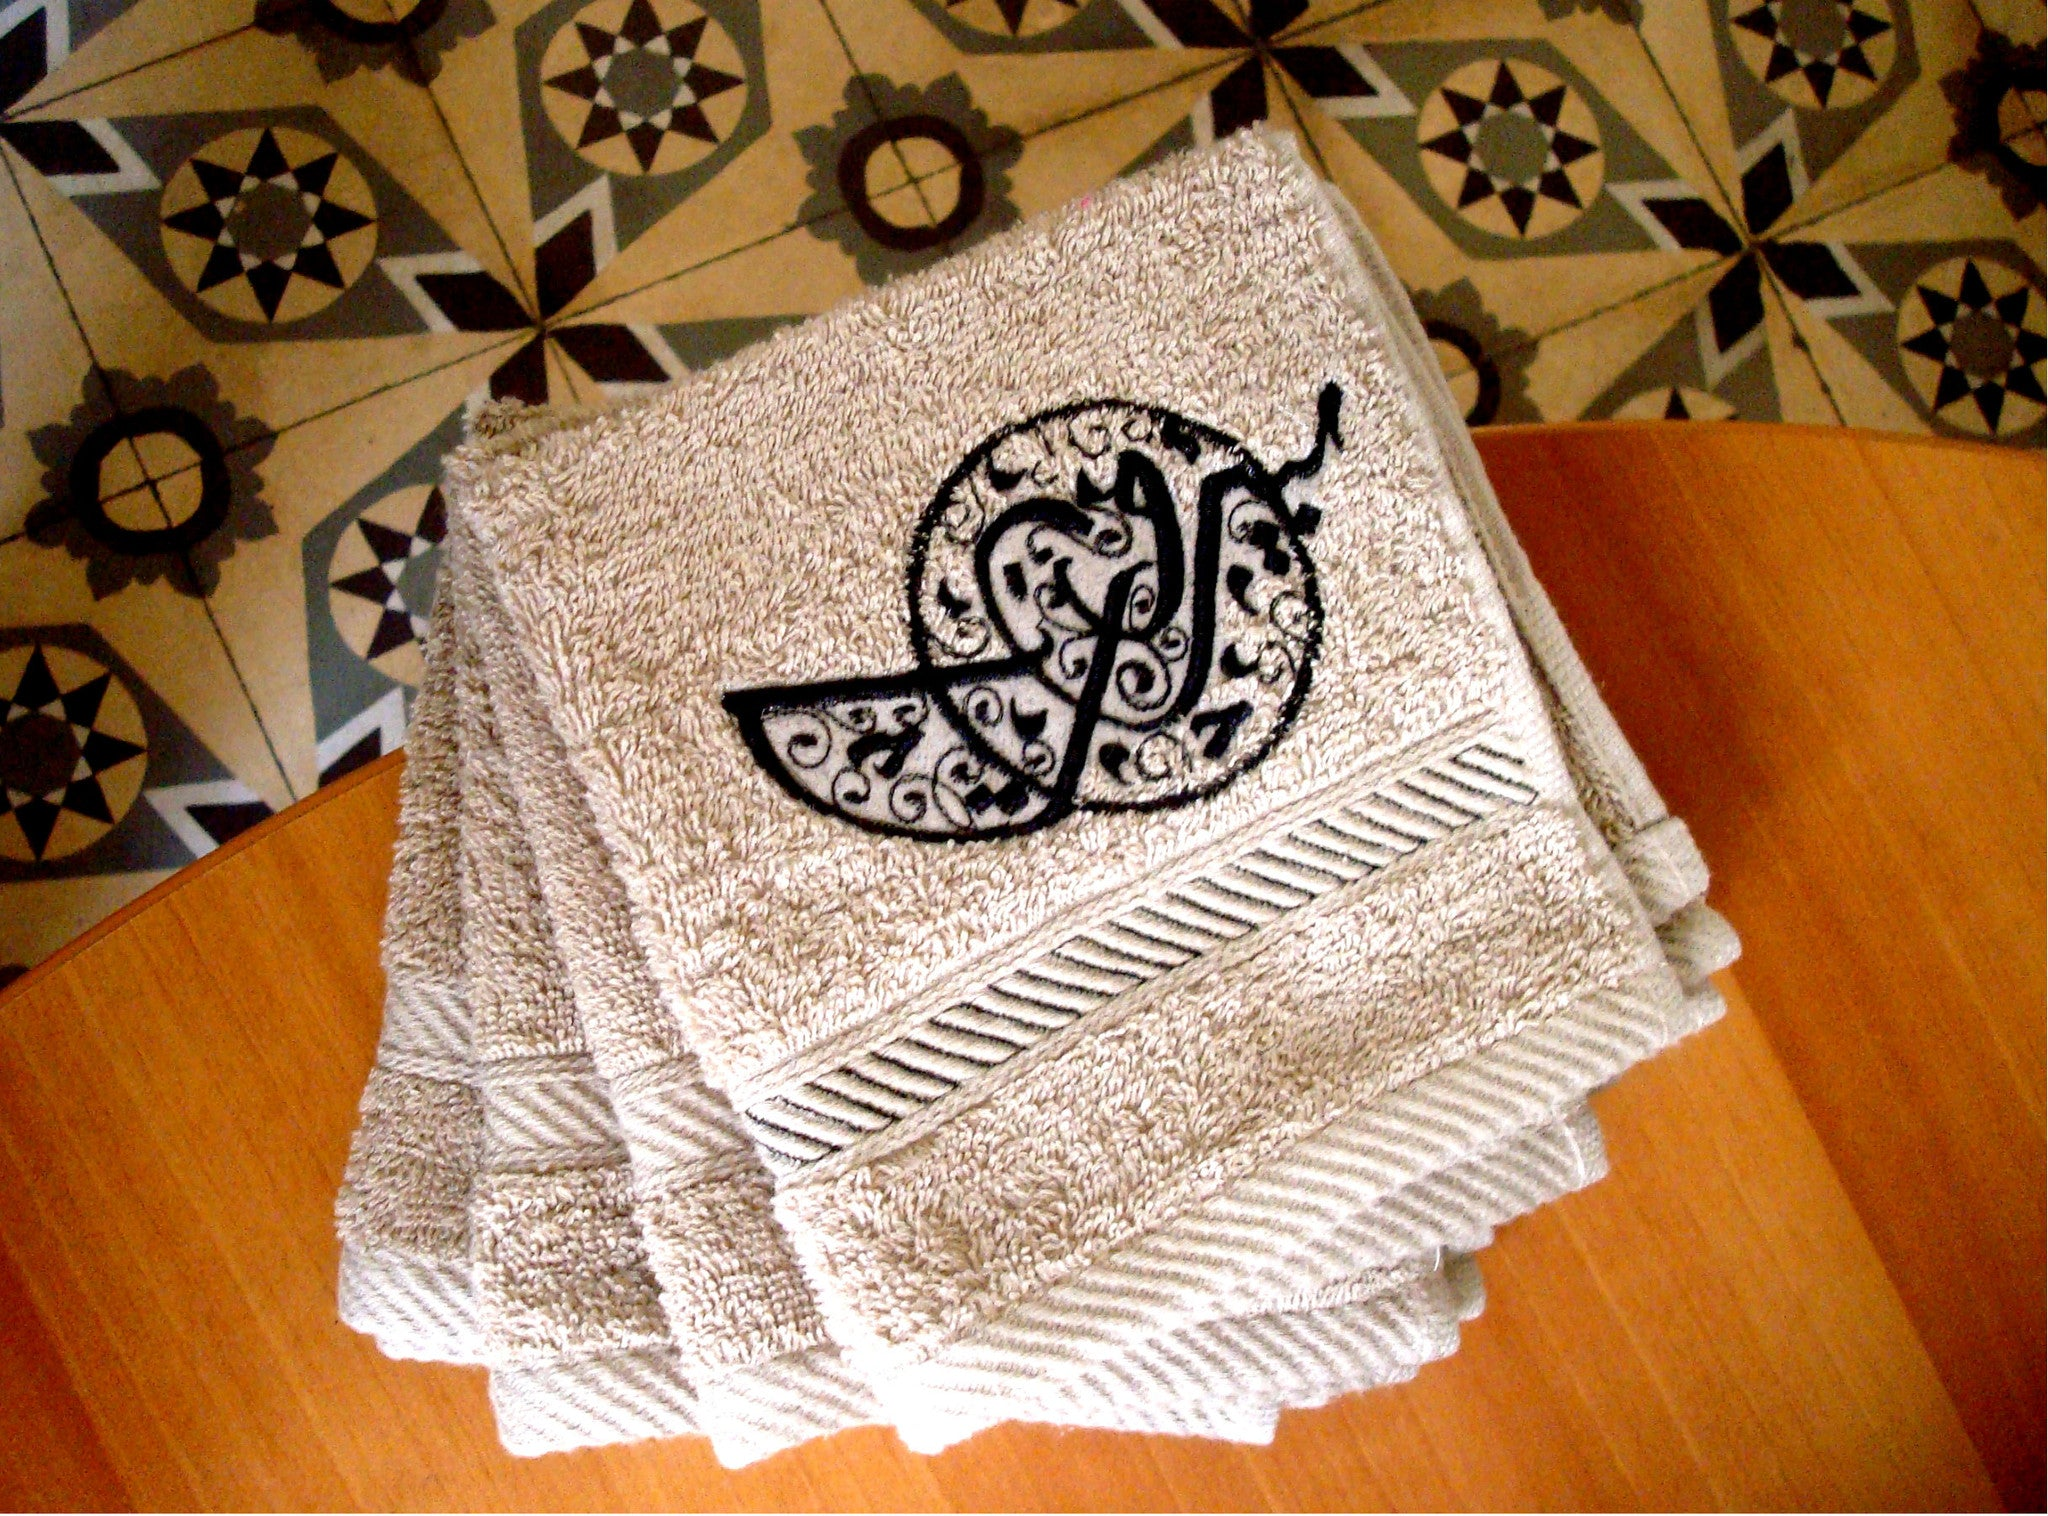 Personalized Embroidered Towel- Beirut|منشفة مصممة حسب الطلب